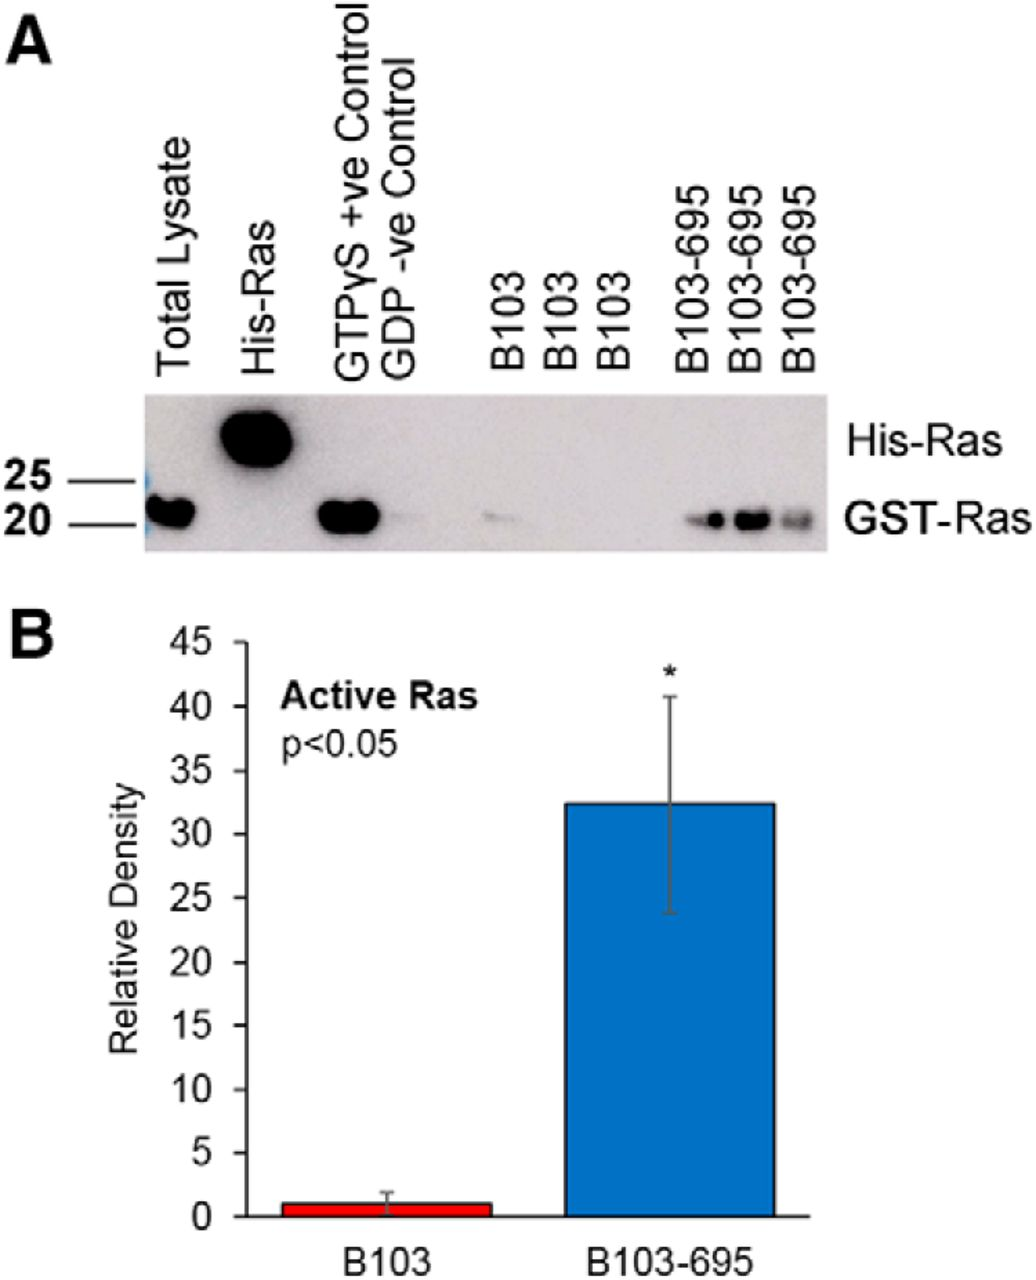 Activation of Ras-ERK Signaling and GSK-3 by Amyloid